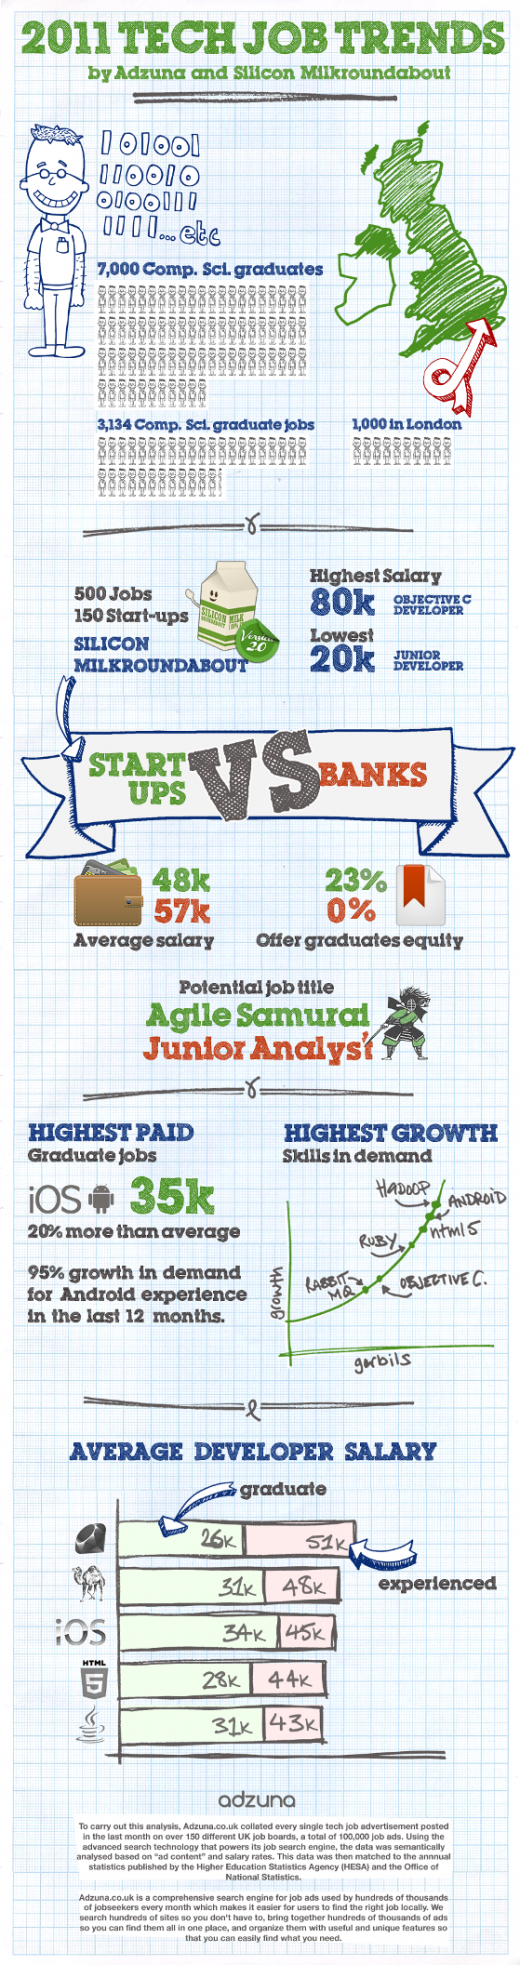 TechJobsInfoGraphic 520x1965 Silicon Milkroundabout: The UKs tech job trends [Infographic]